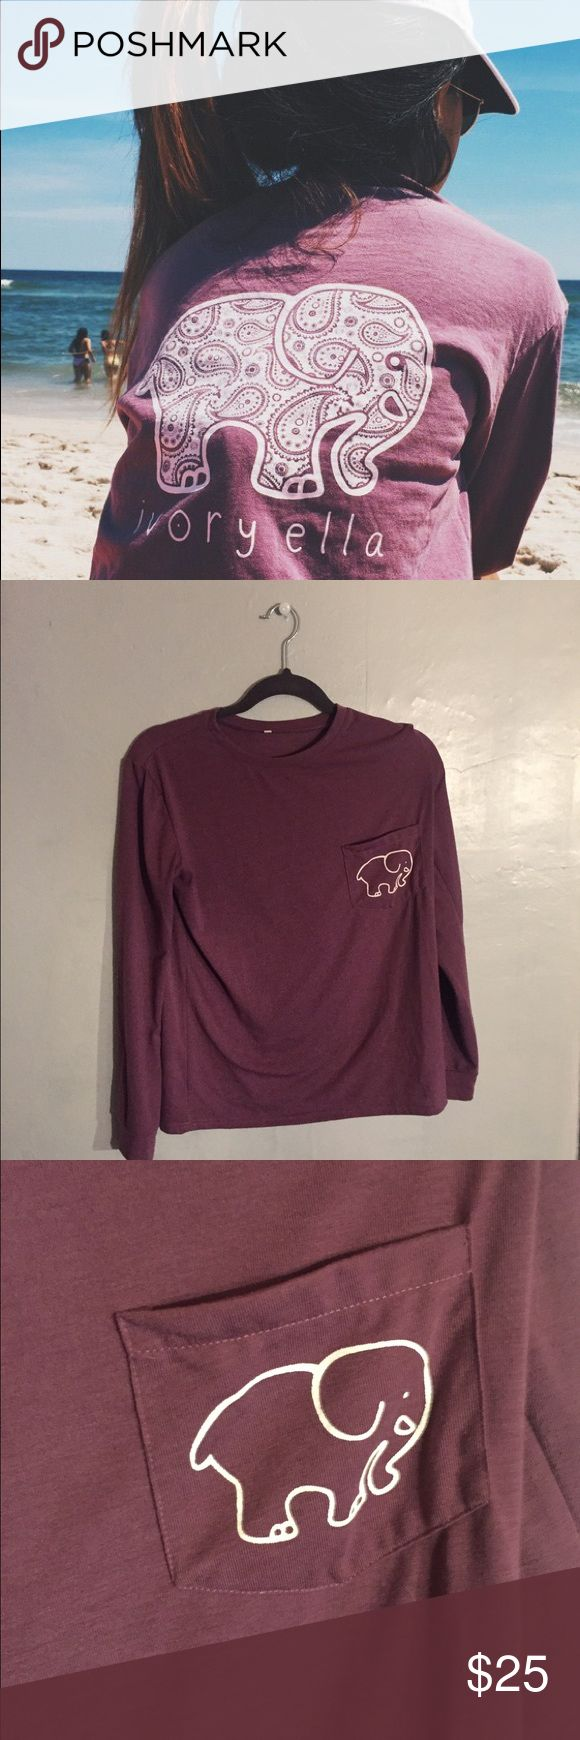 Home clothing mens clothing dragon furnace longsleeve t - Ivory Ella Long Sleeve Purple Ivory Ella Long Sleeve Worn Once Or Twice No